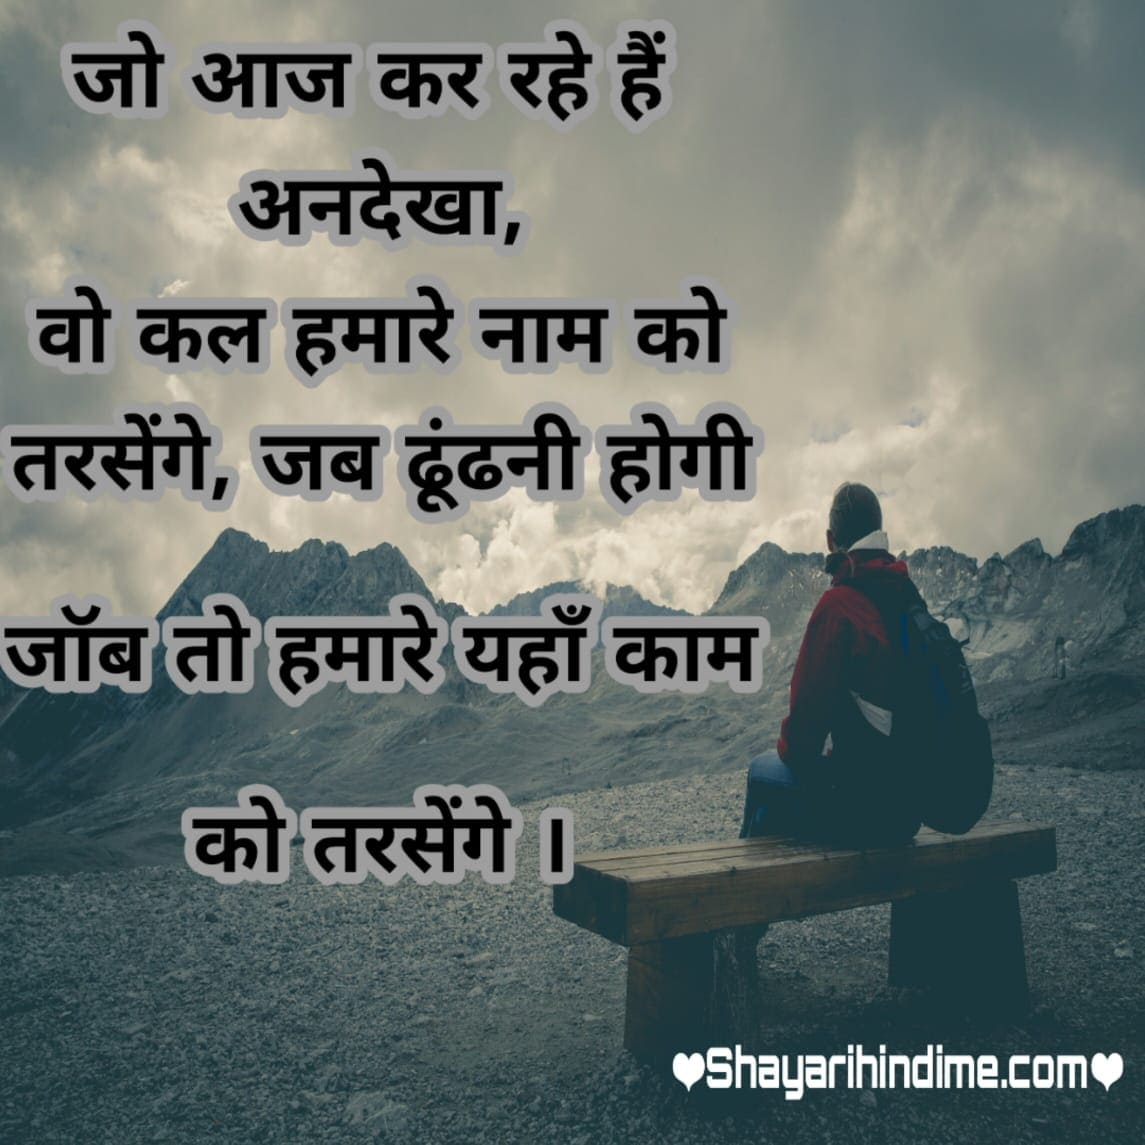 Attitude shayri in hindi